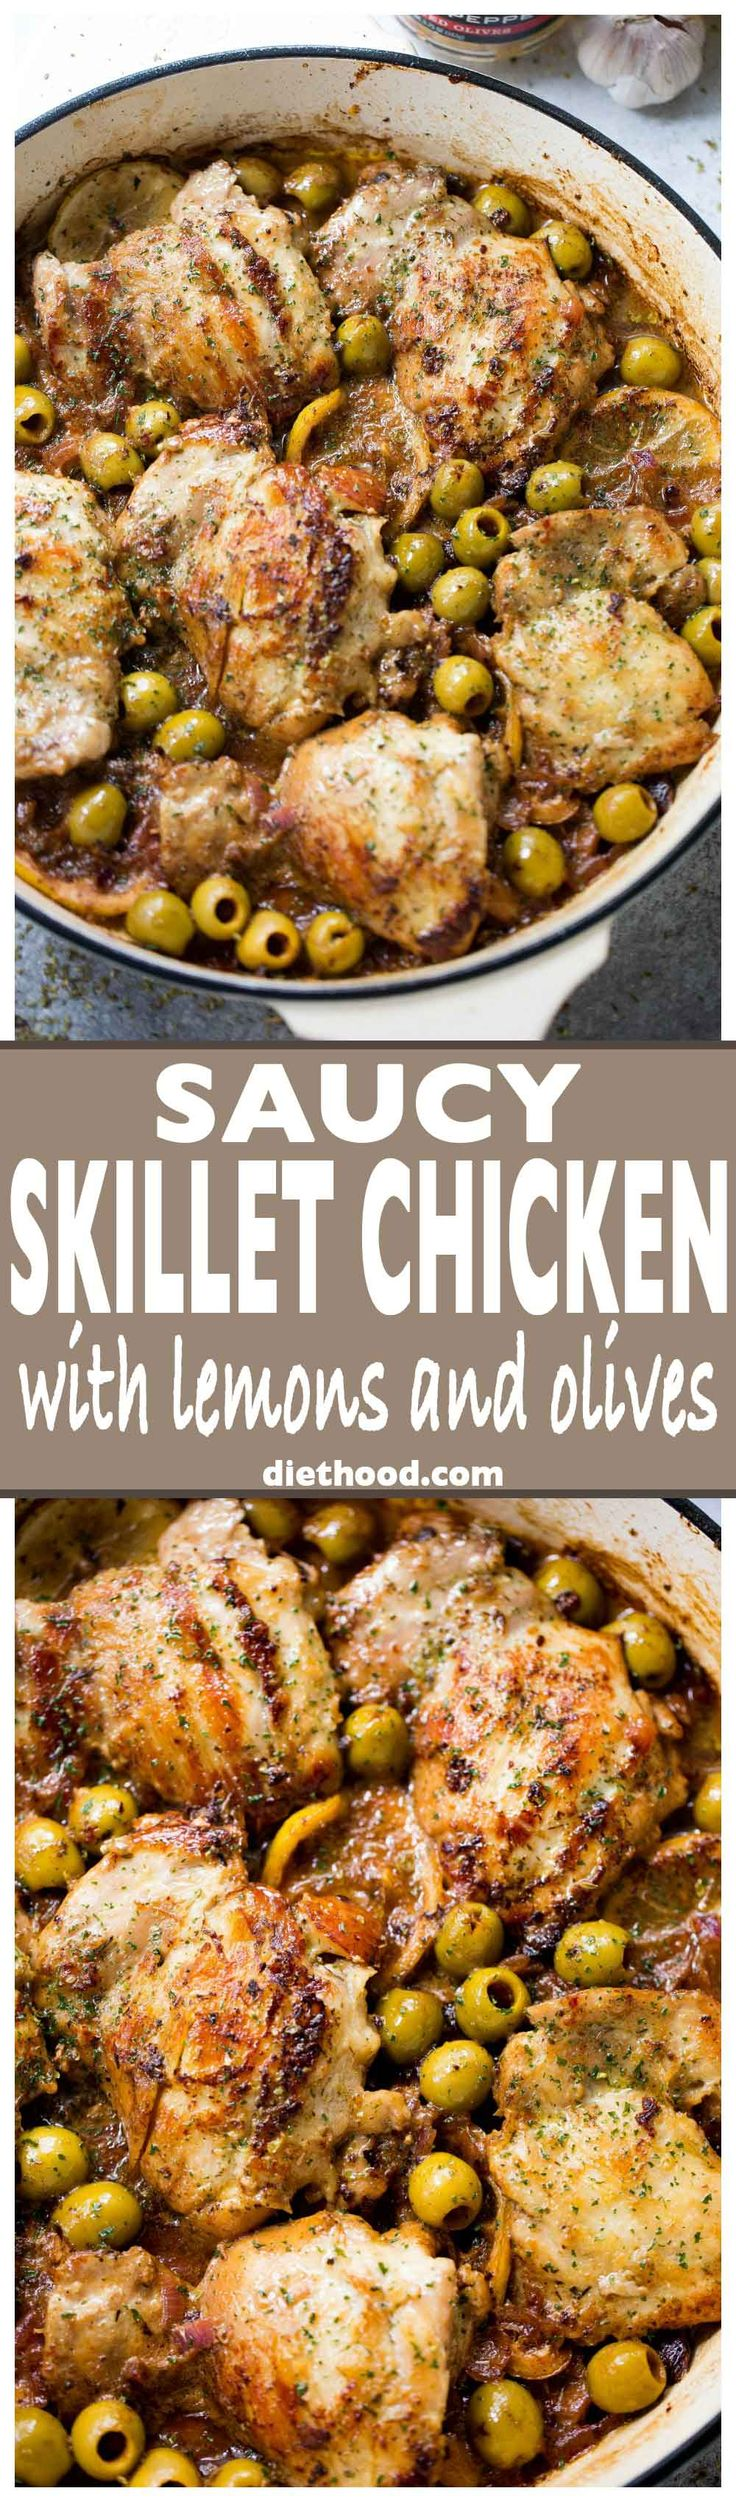 Saucy Skillet Chicken with Lemons and Olives - Delicious pan seared chicken thighs prepared with olives, lemons, and red wine.